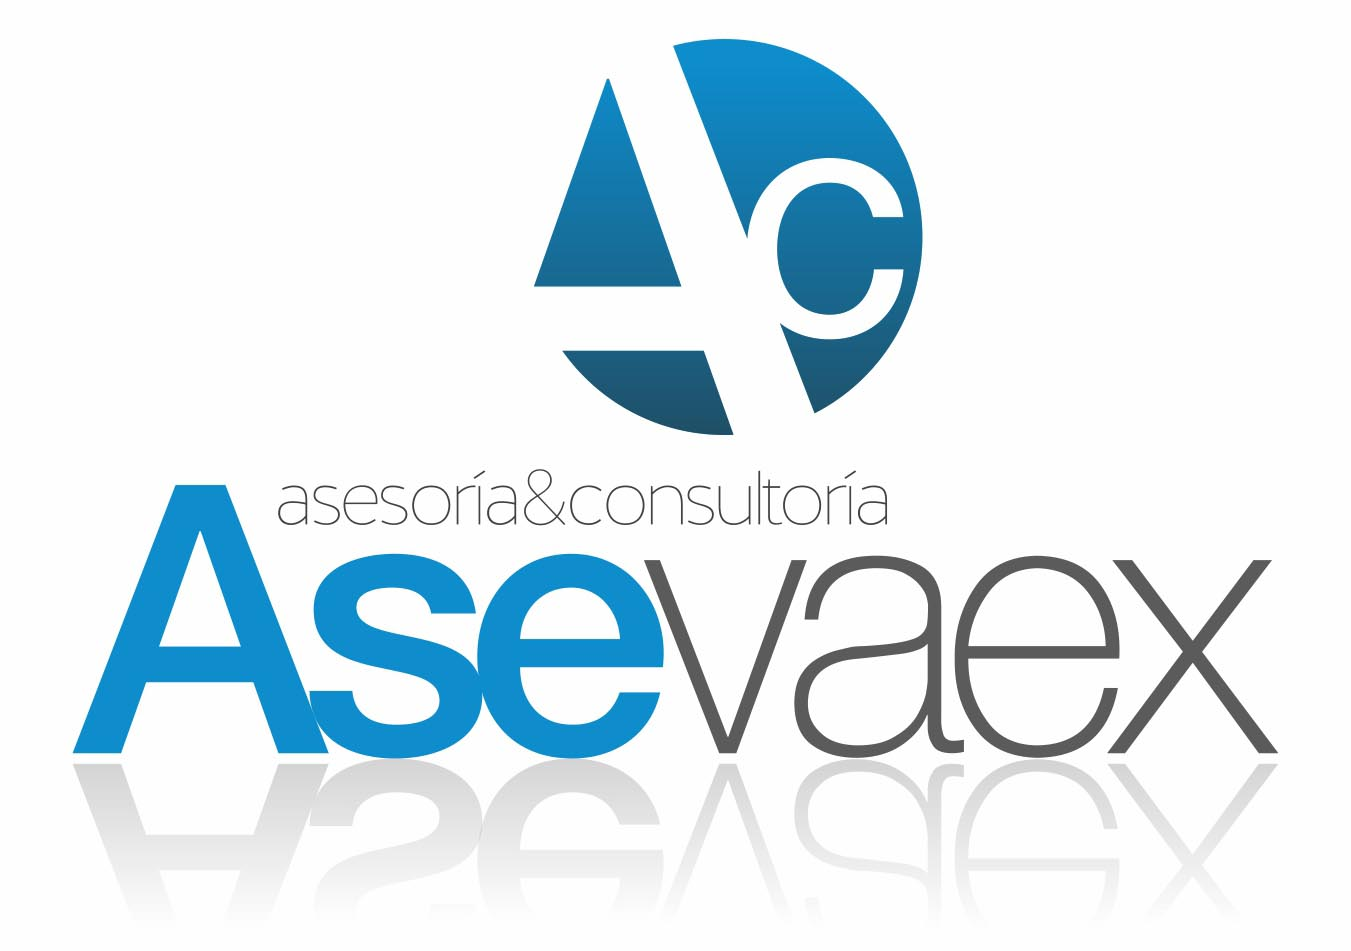 Asevaex